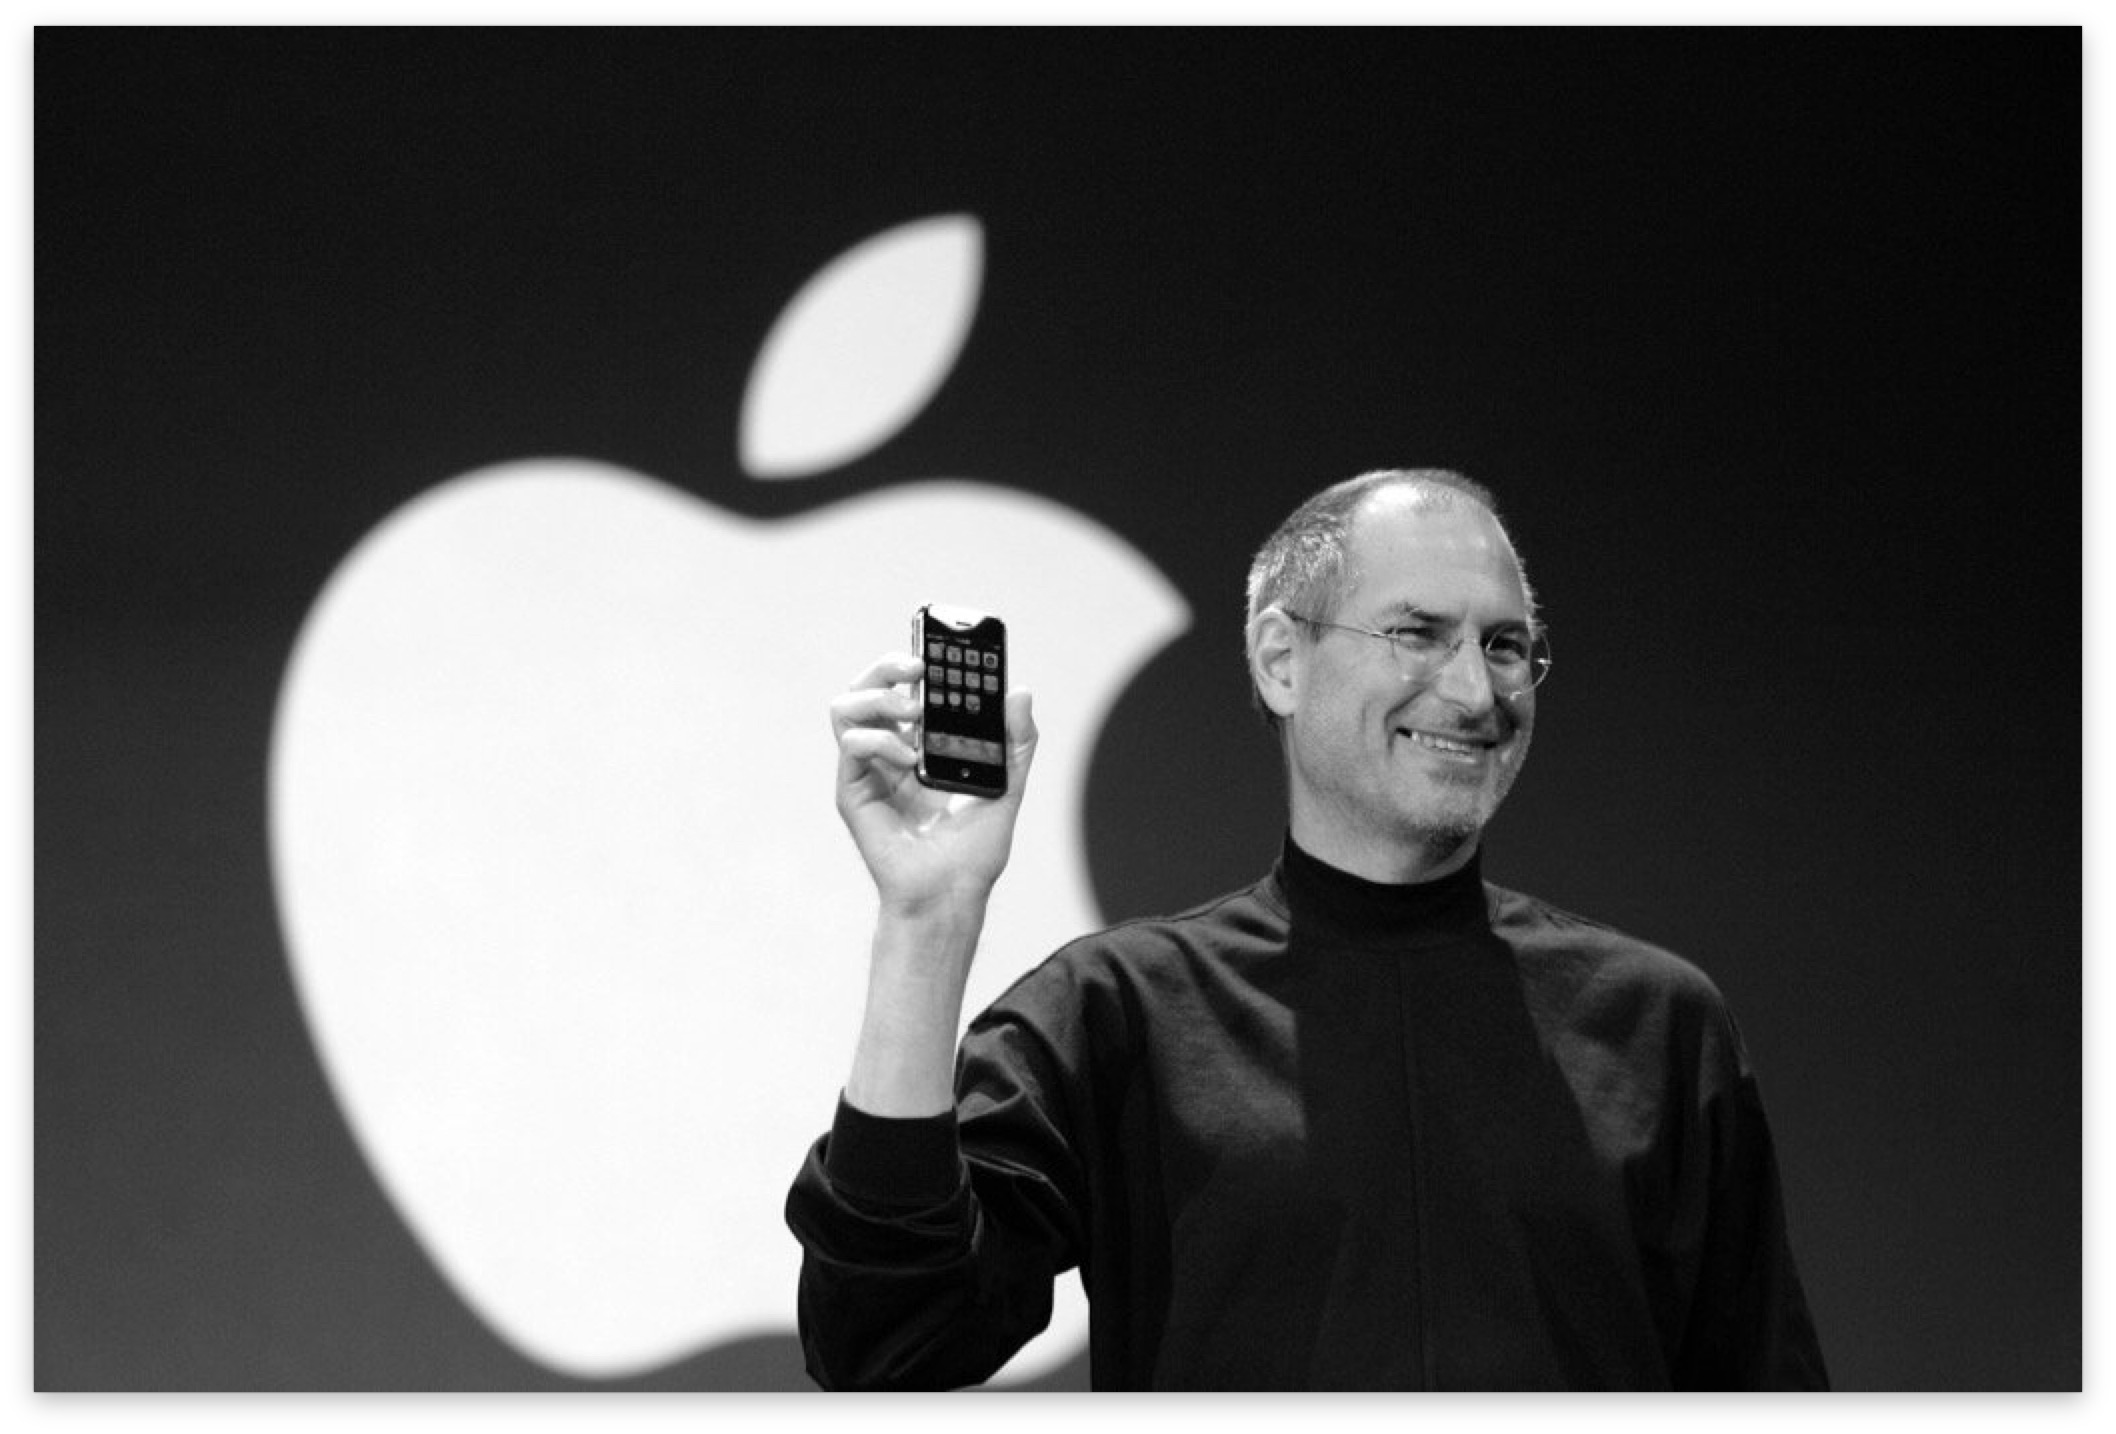 Steve Jobs showing original iPhone on stage